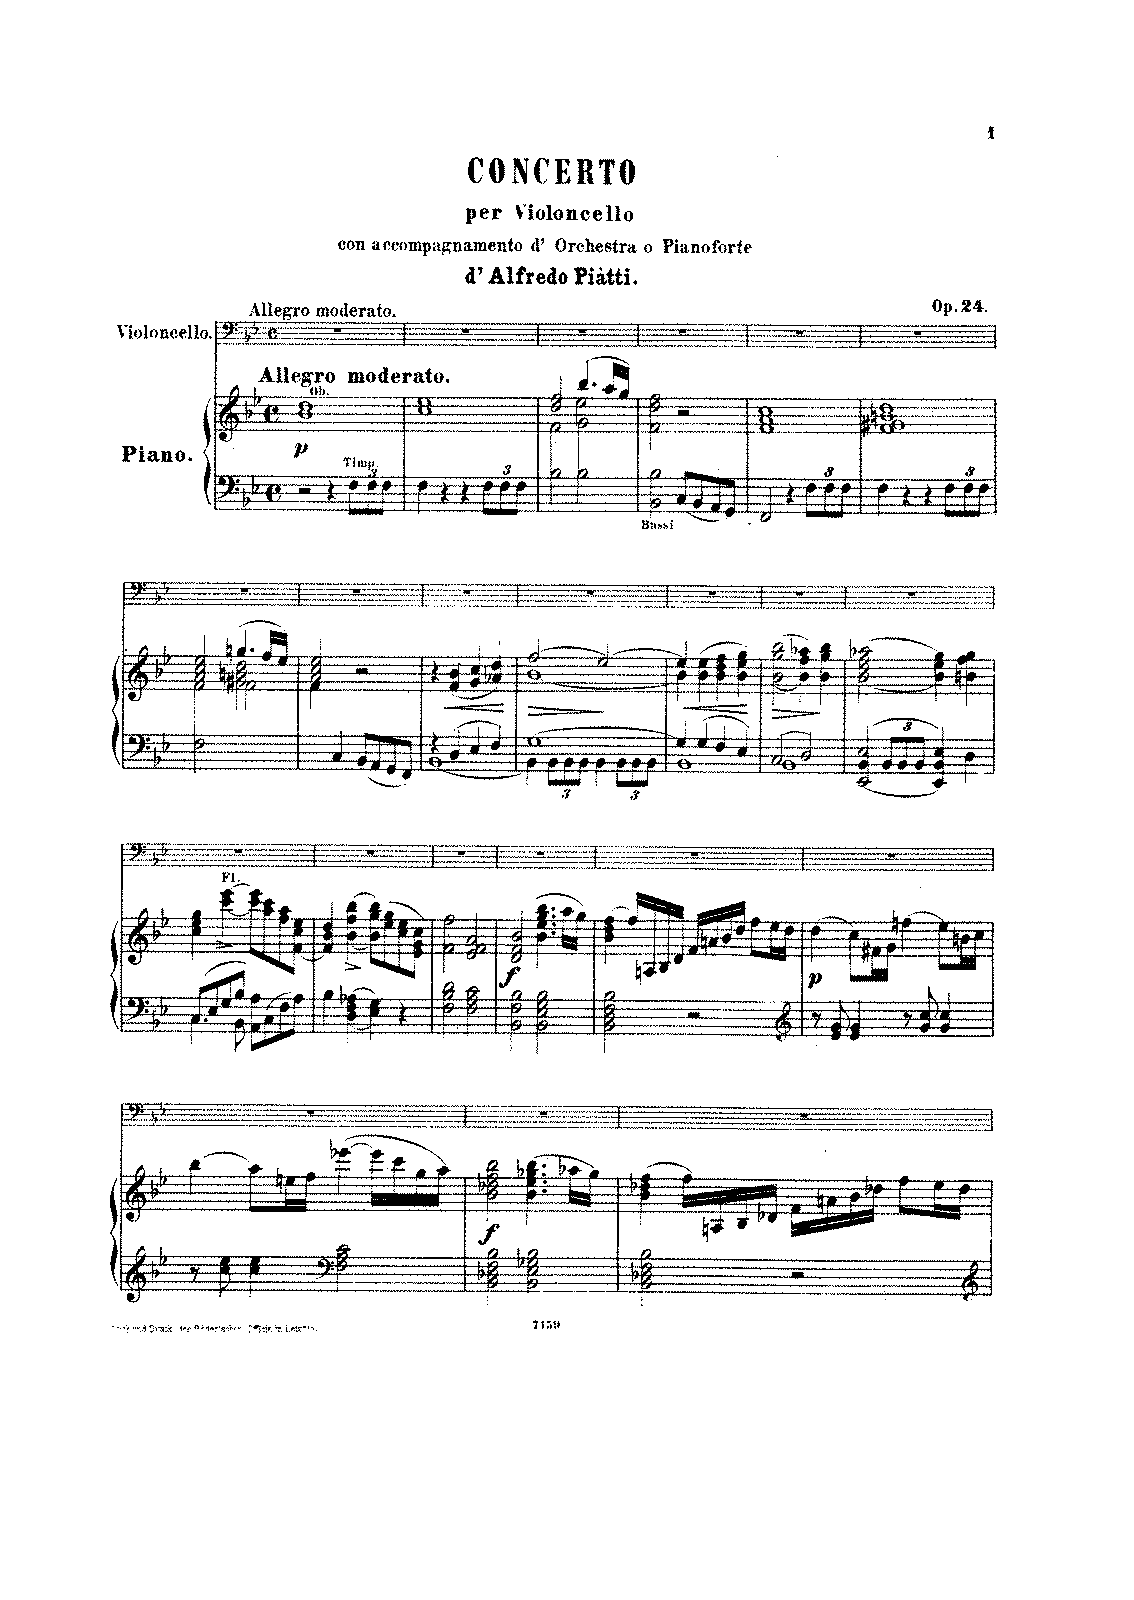 PMLP380040-Piatti - Cello Concerto No1 Op24 in B flat major piano score.pdf